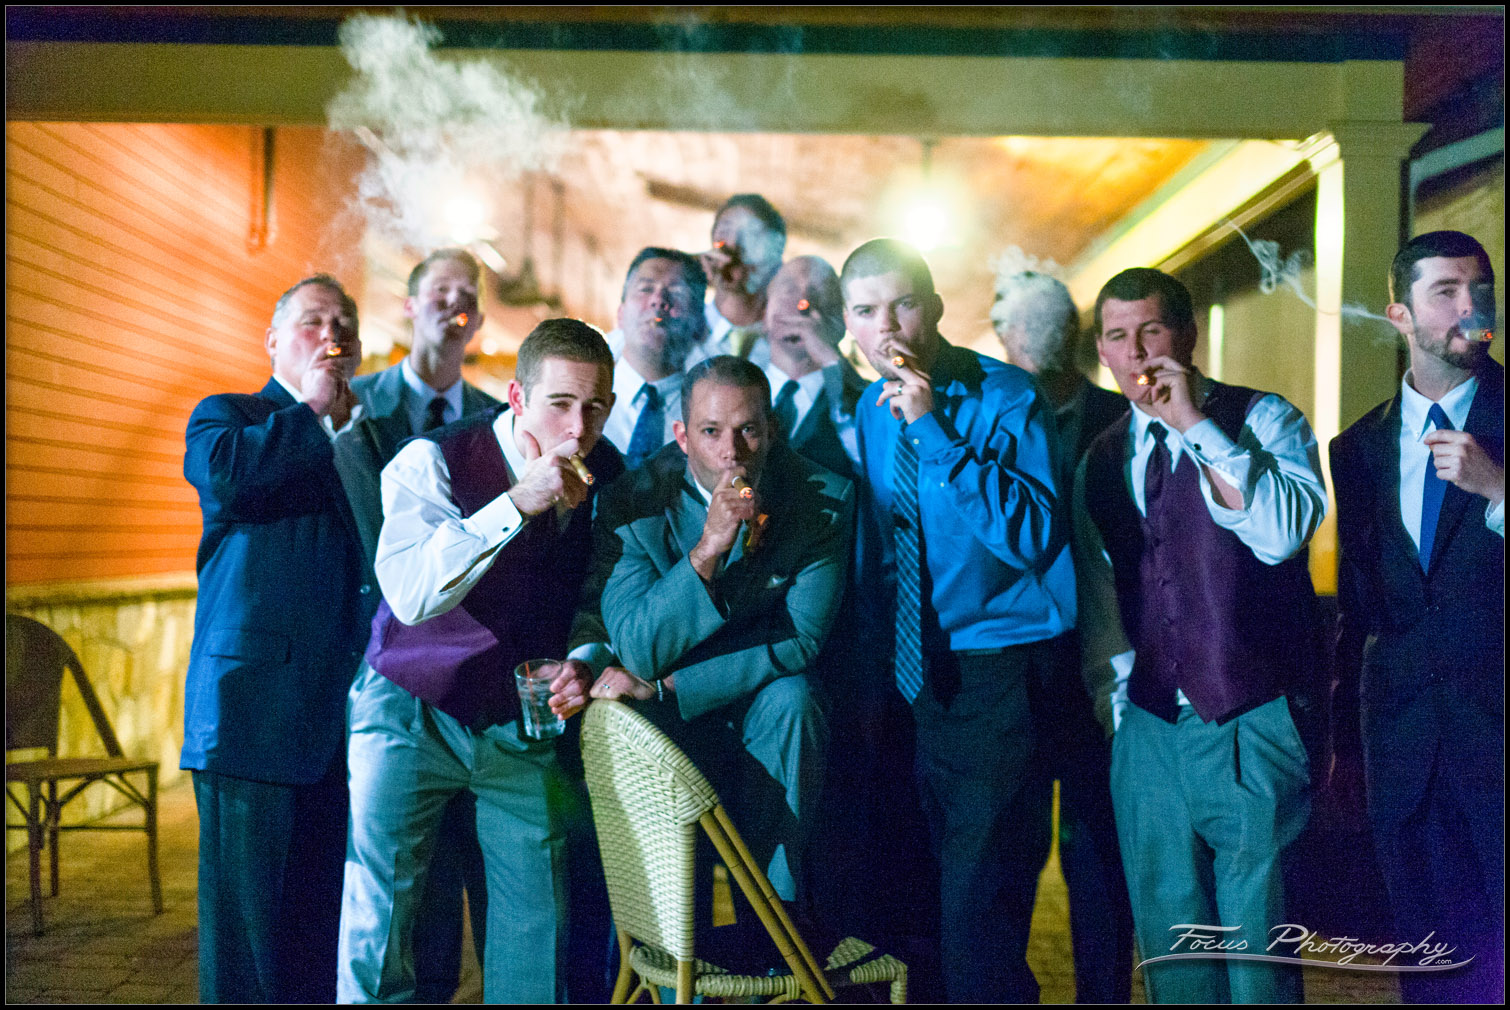 cigars being smoked outside red barn at end of wedding